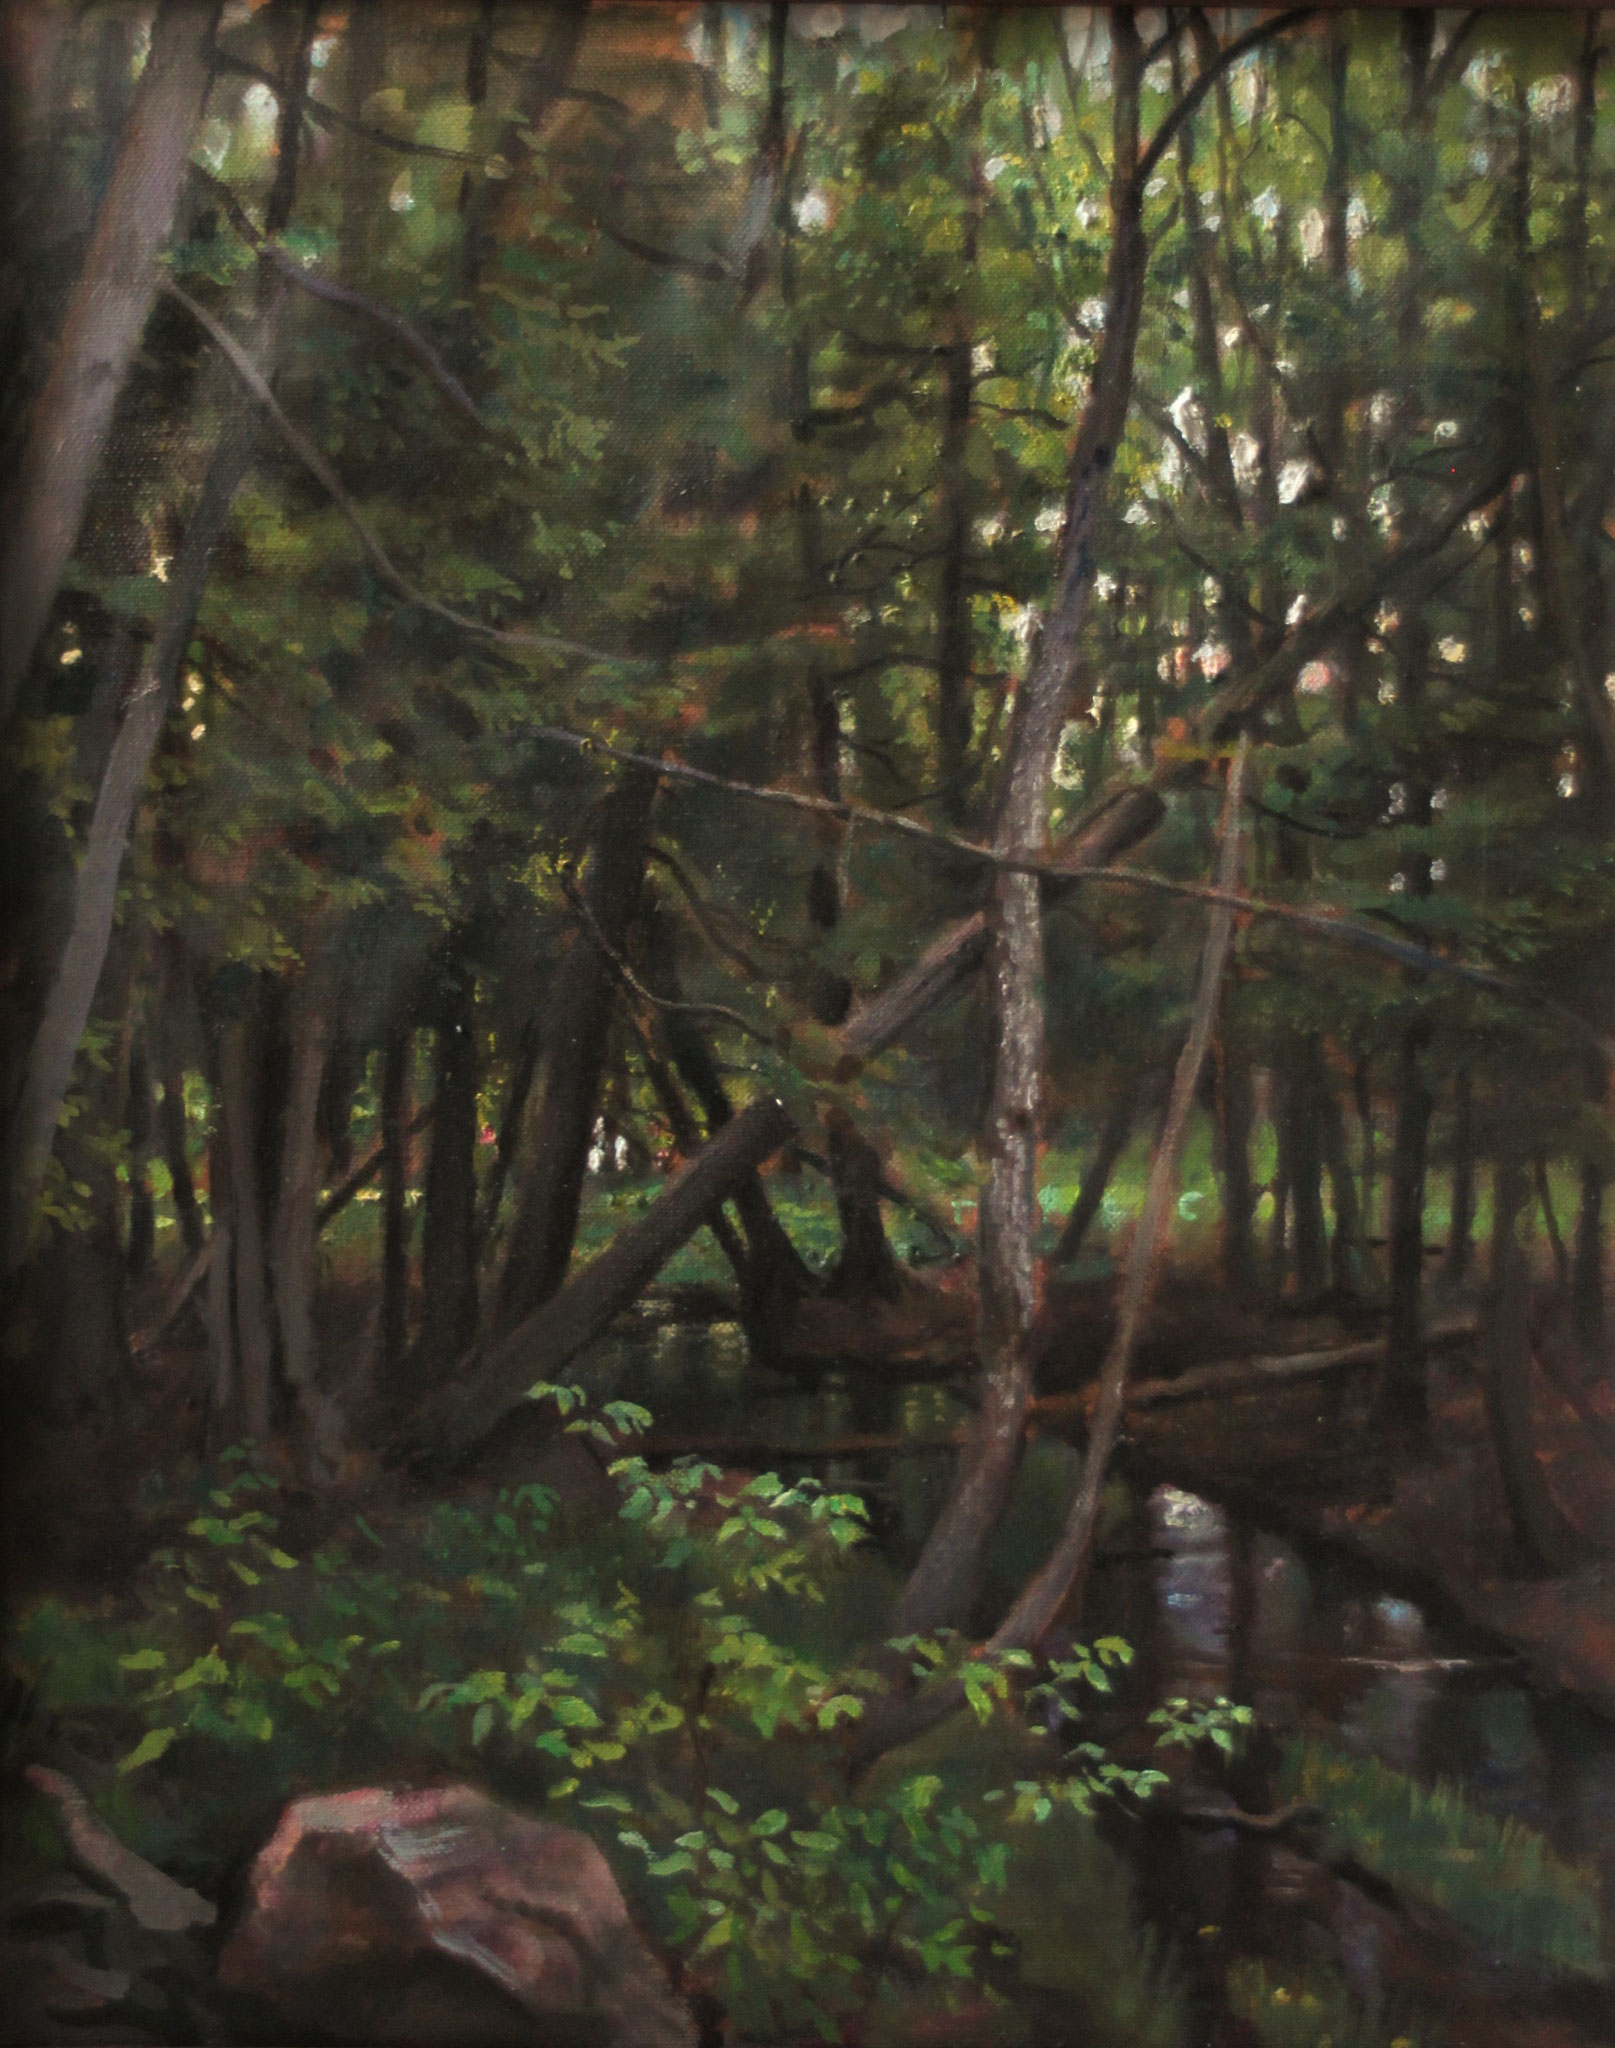 CEDAR FOREST 20 x16 oil on fine linen by Cyril Leeper